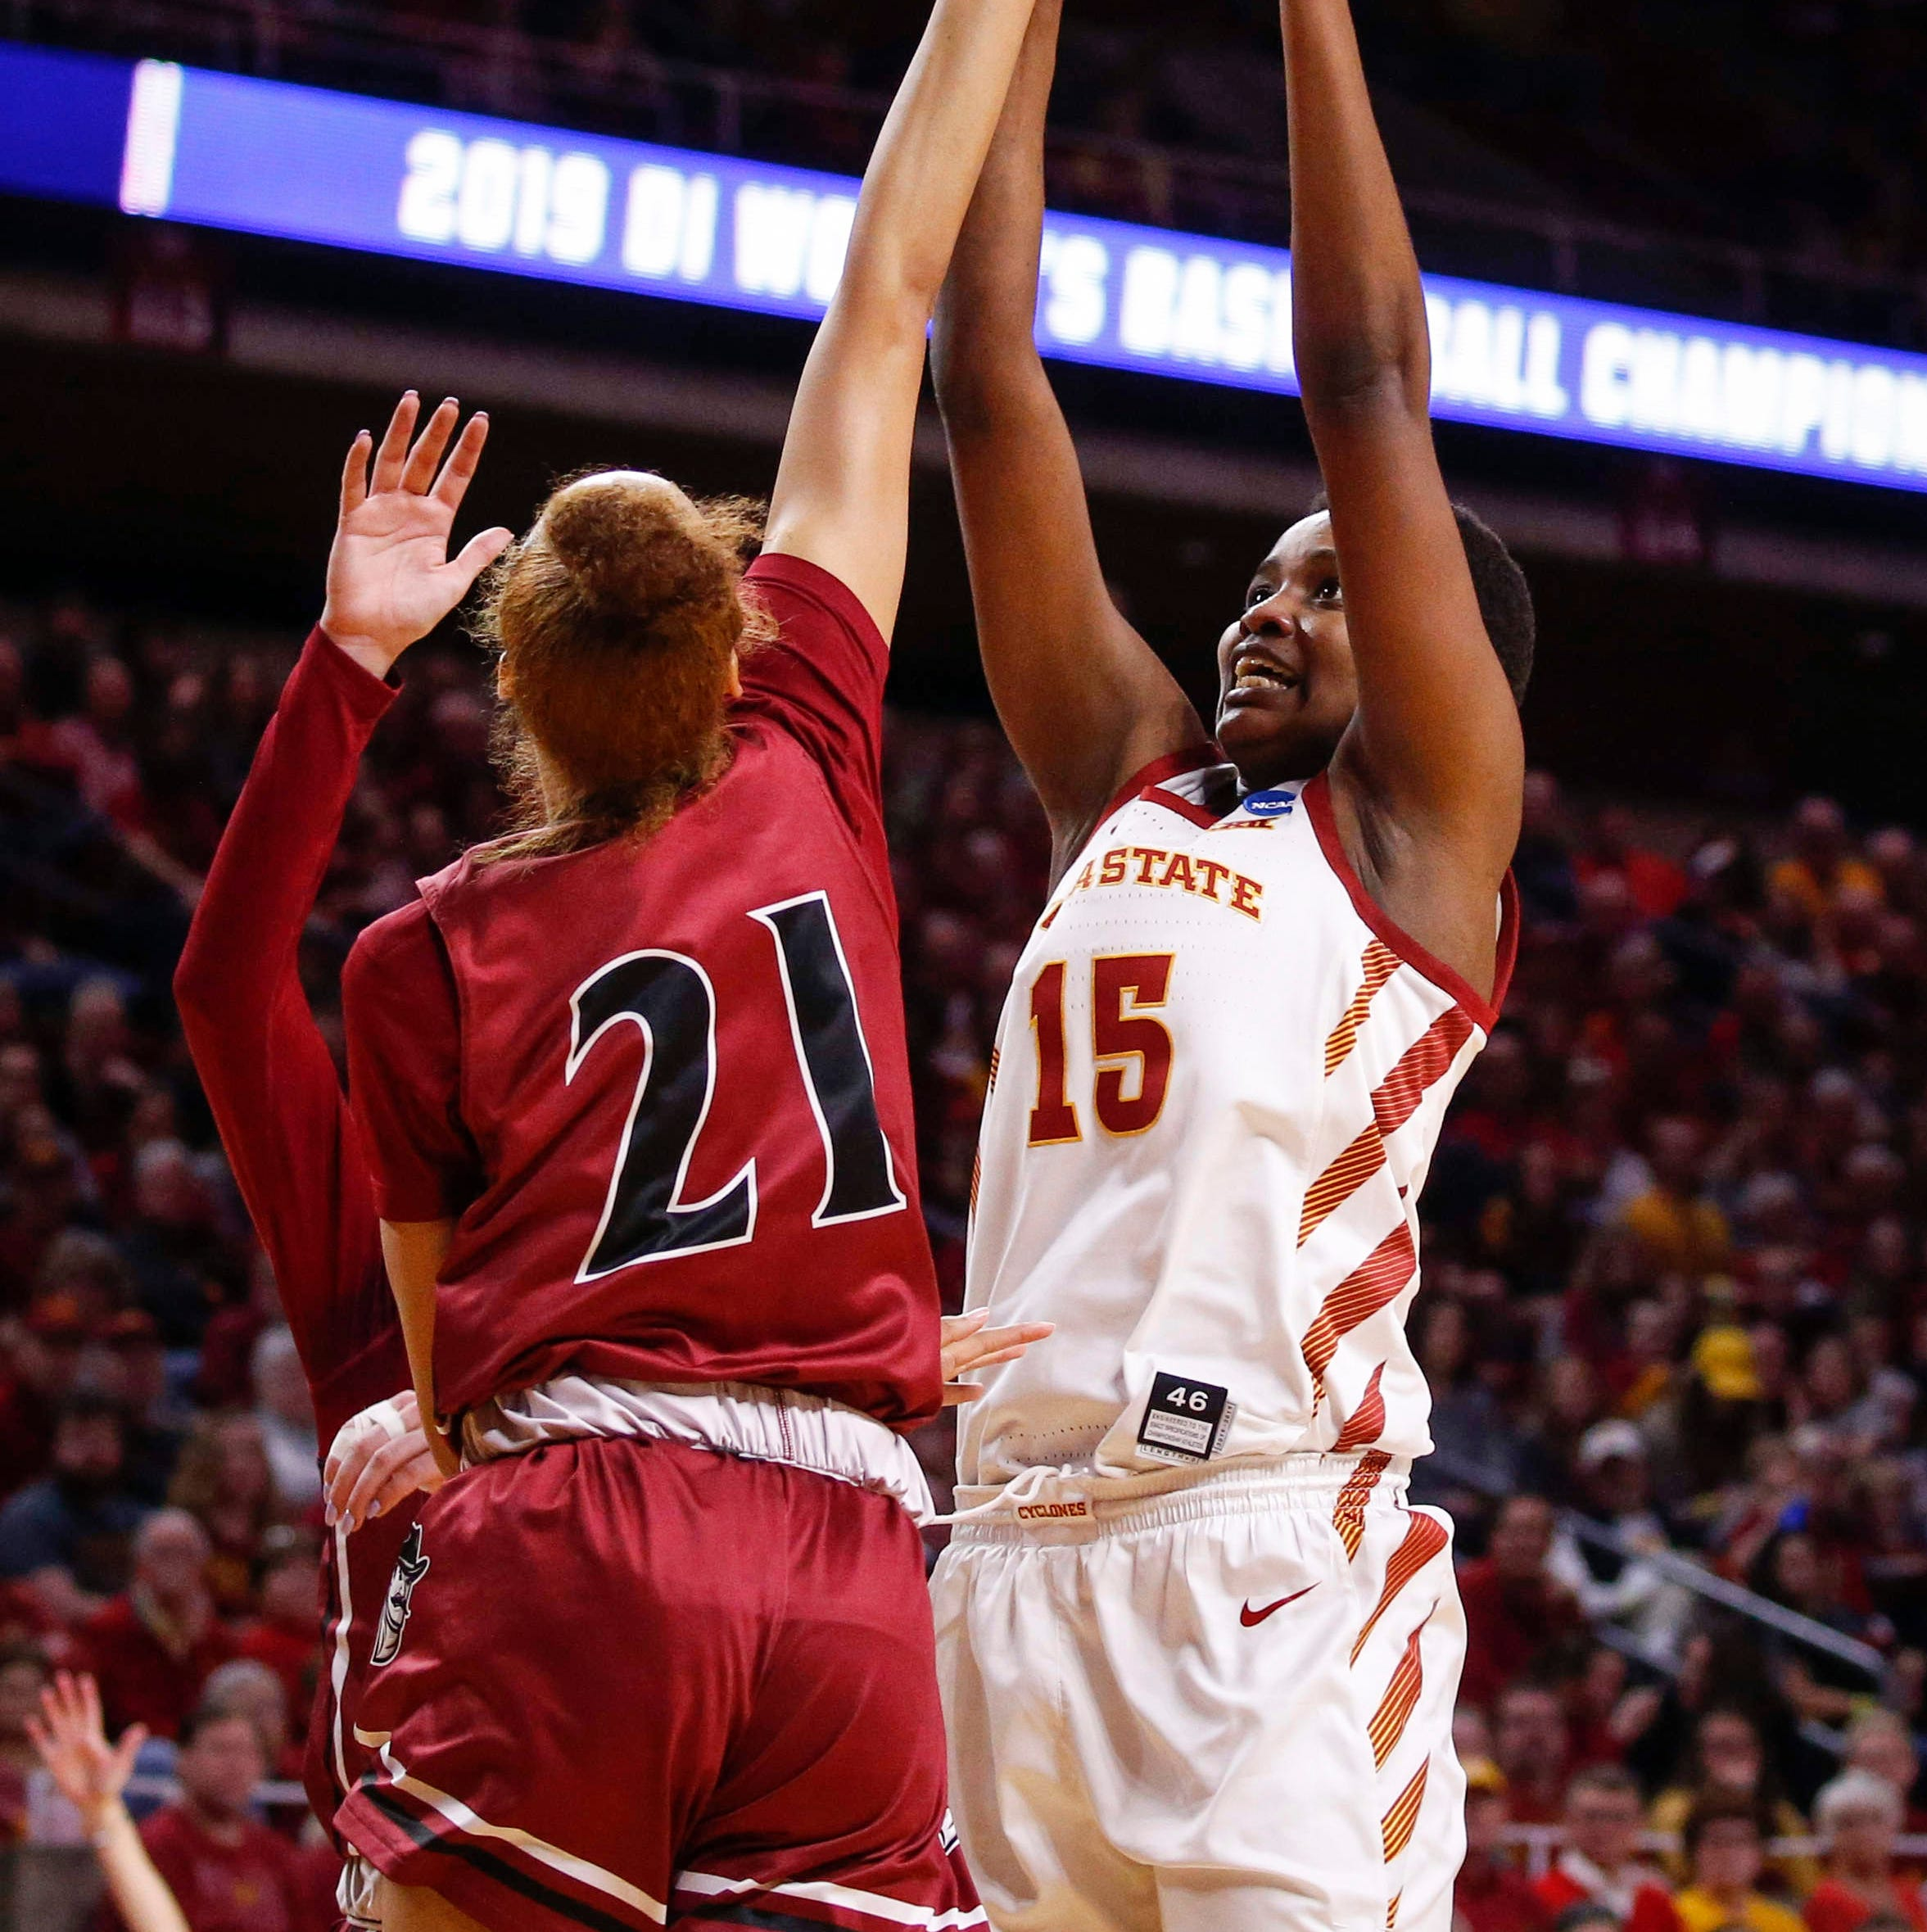 Iowa State knocks off New Mexico State women in NCAA Tournament first round